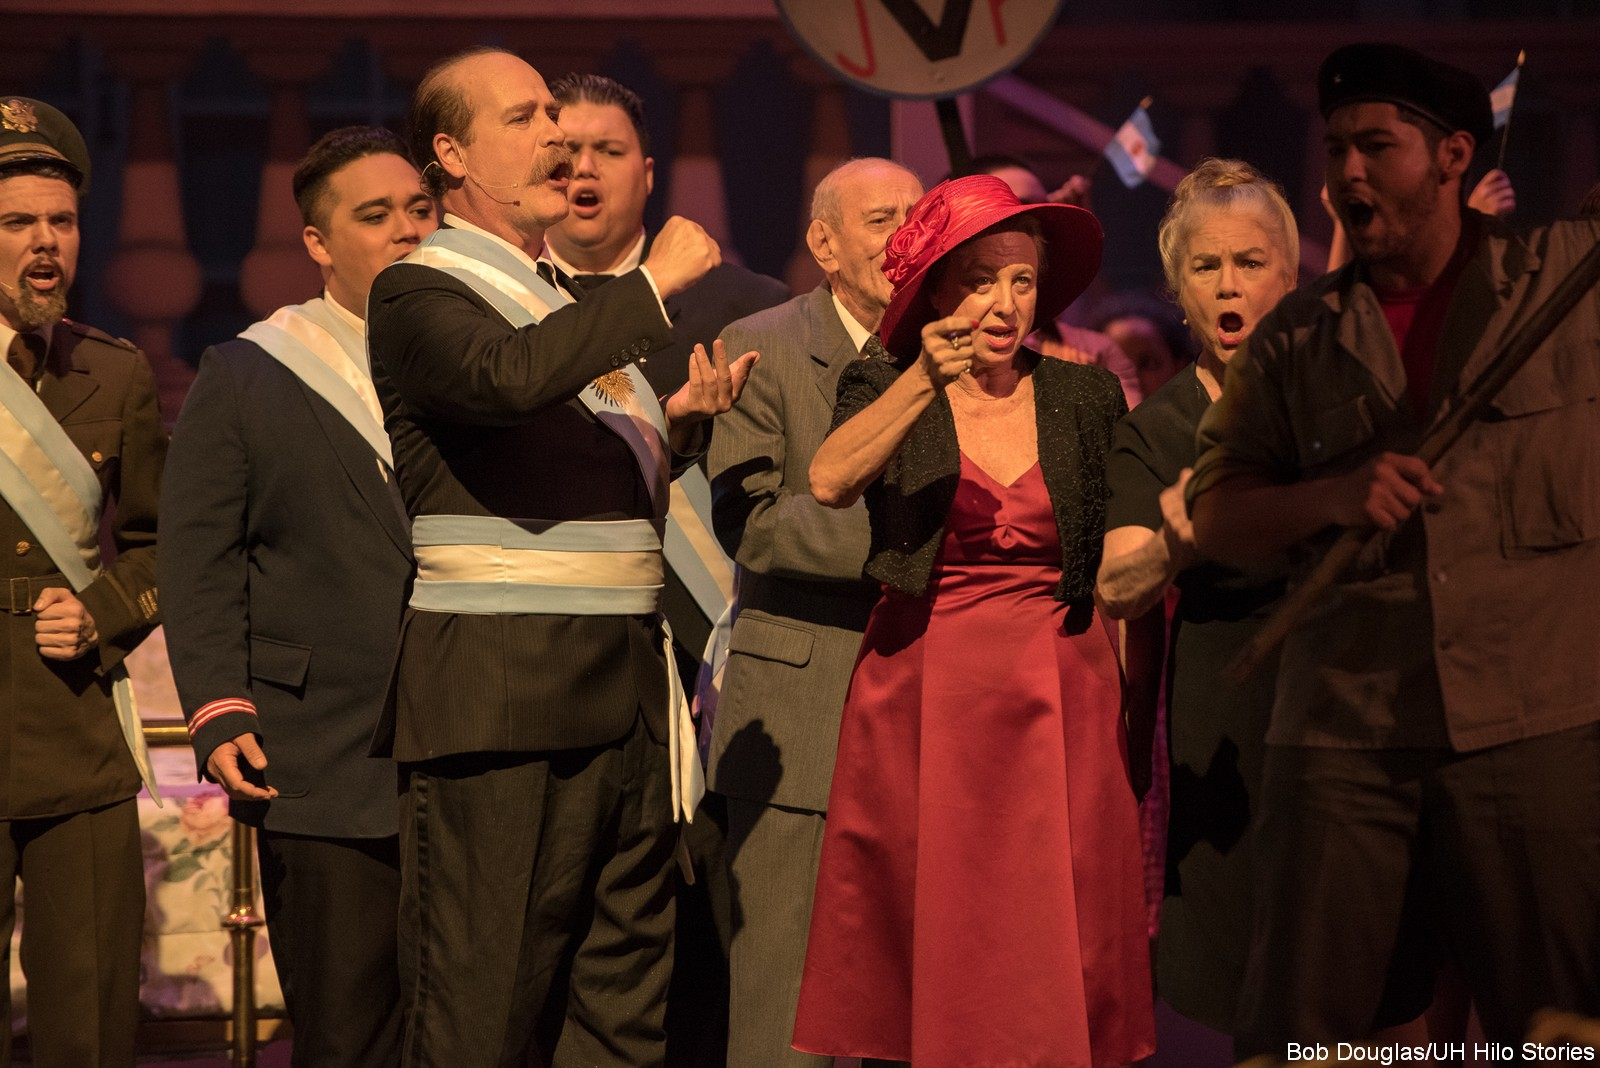 Group singing, woman in red hat.